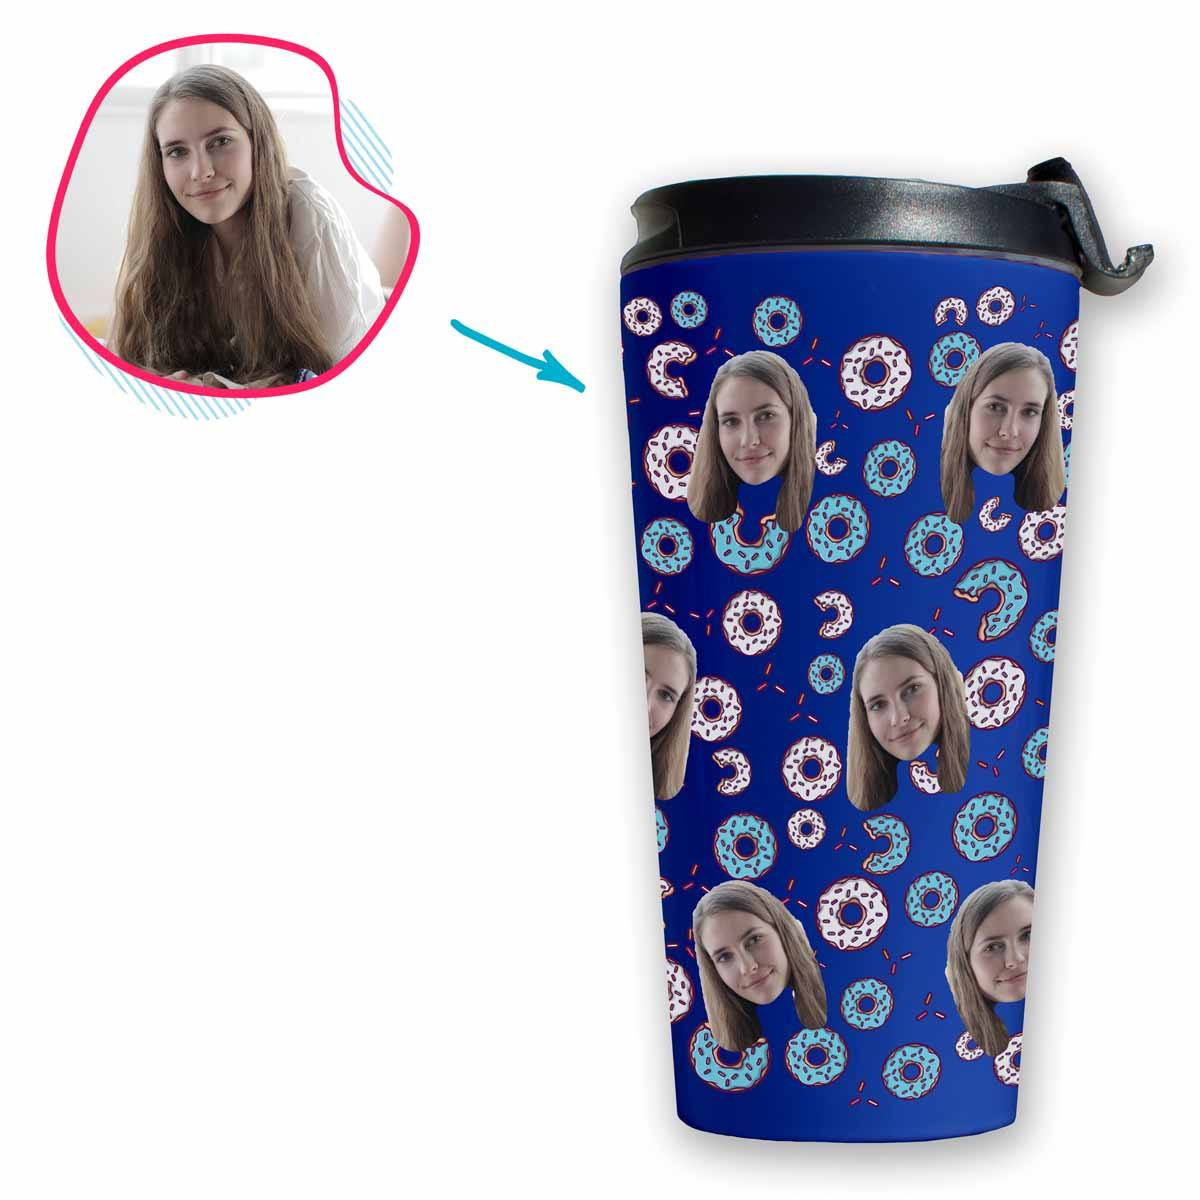 darkblue Donuts travel mug personalized with photo of face printed on it